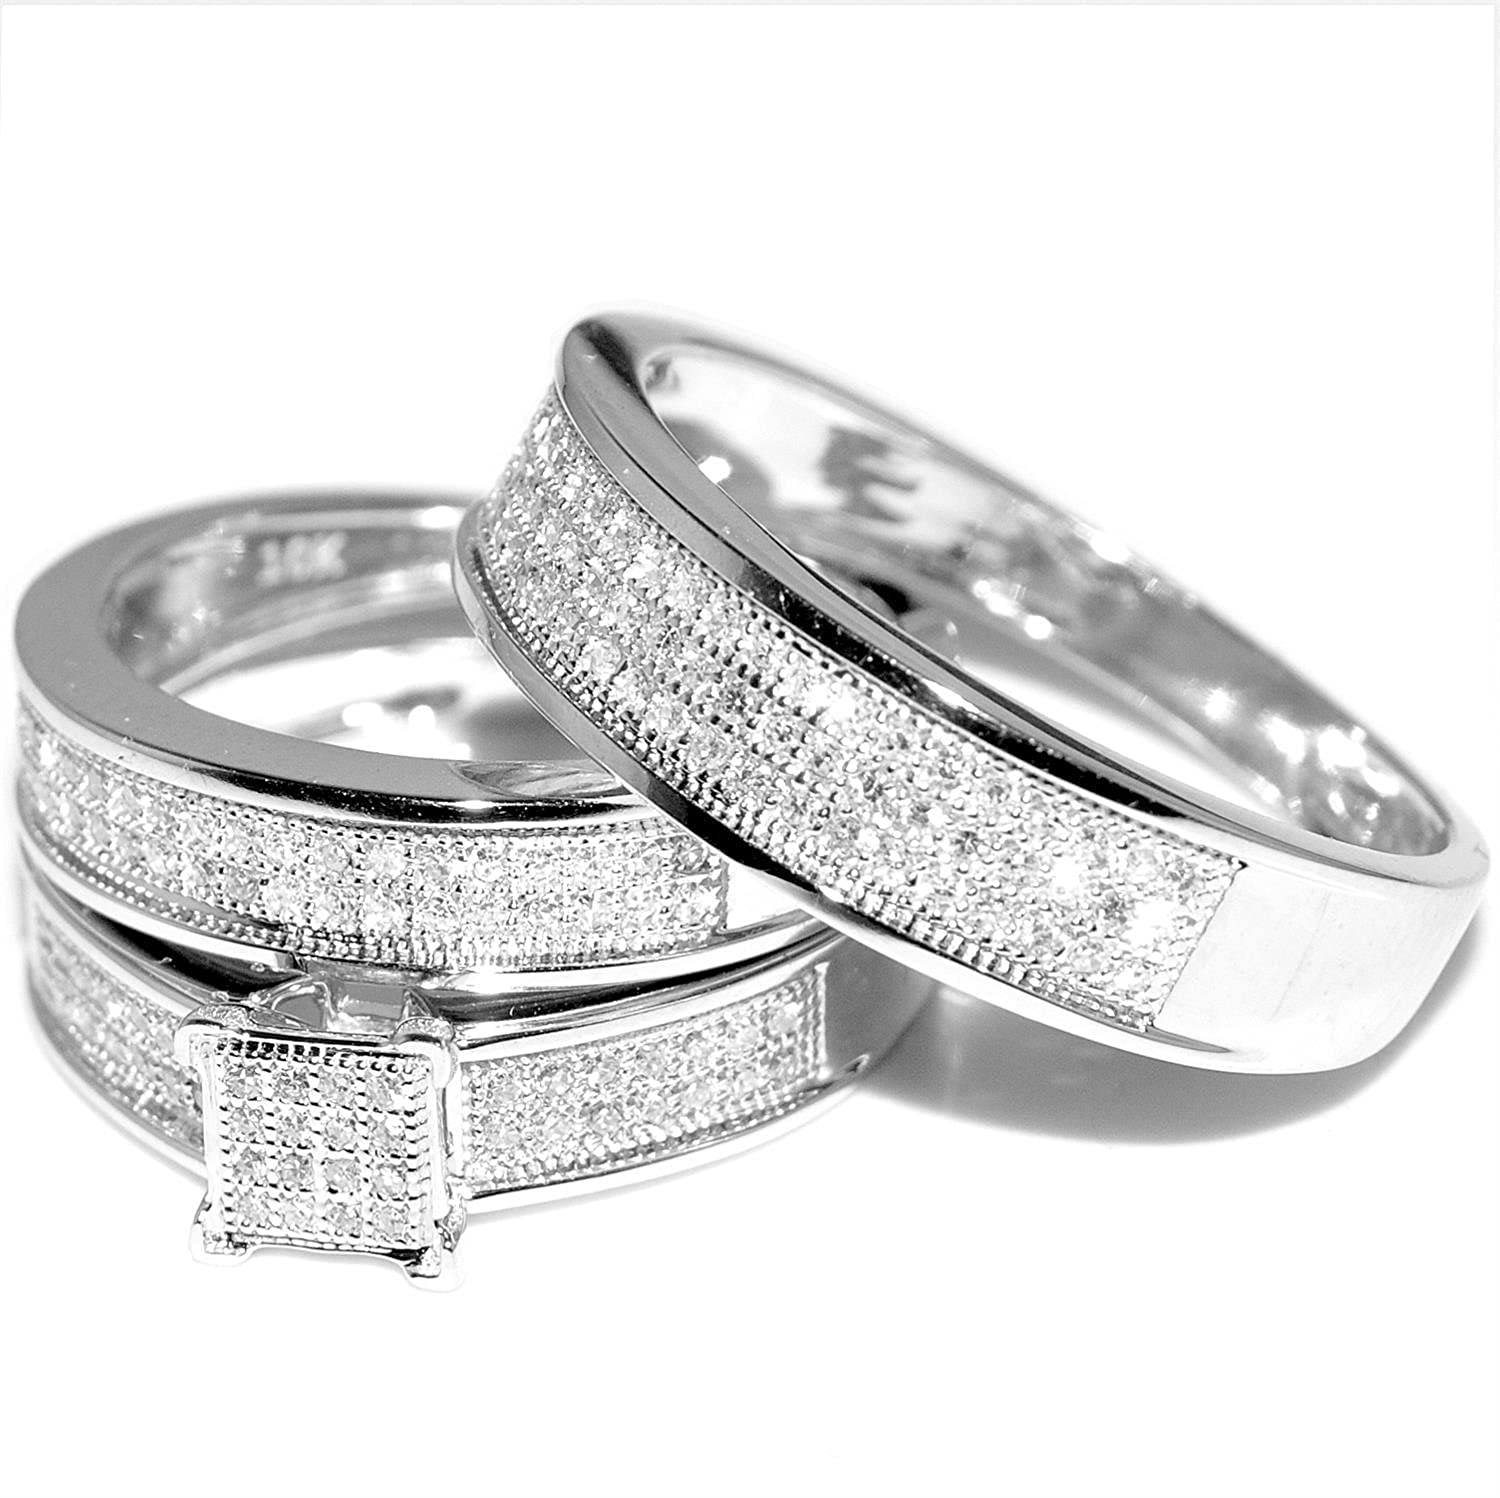 White Gold Trio Wedding Set Mens Womens Rings Matching 040cttw Diamond